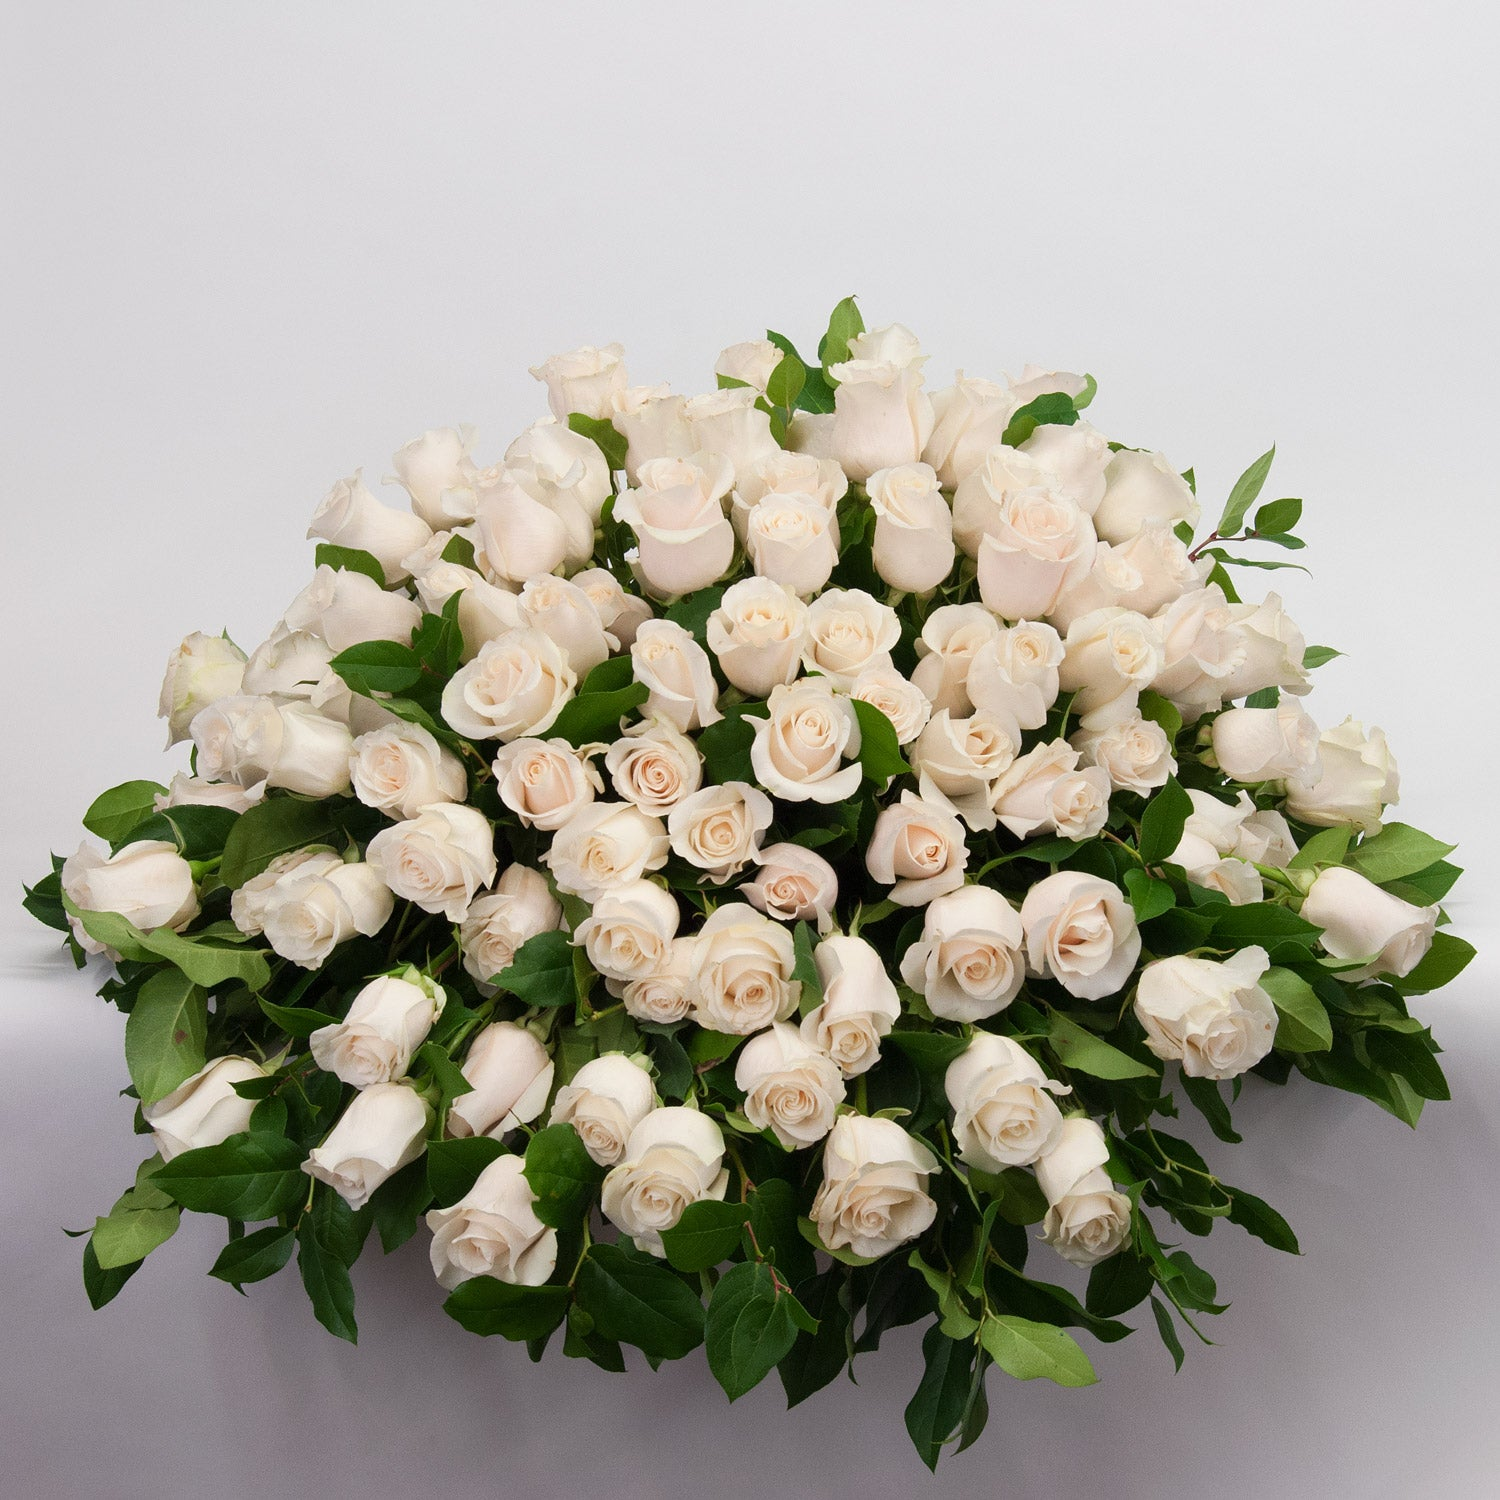 White Rose Casket Spray